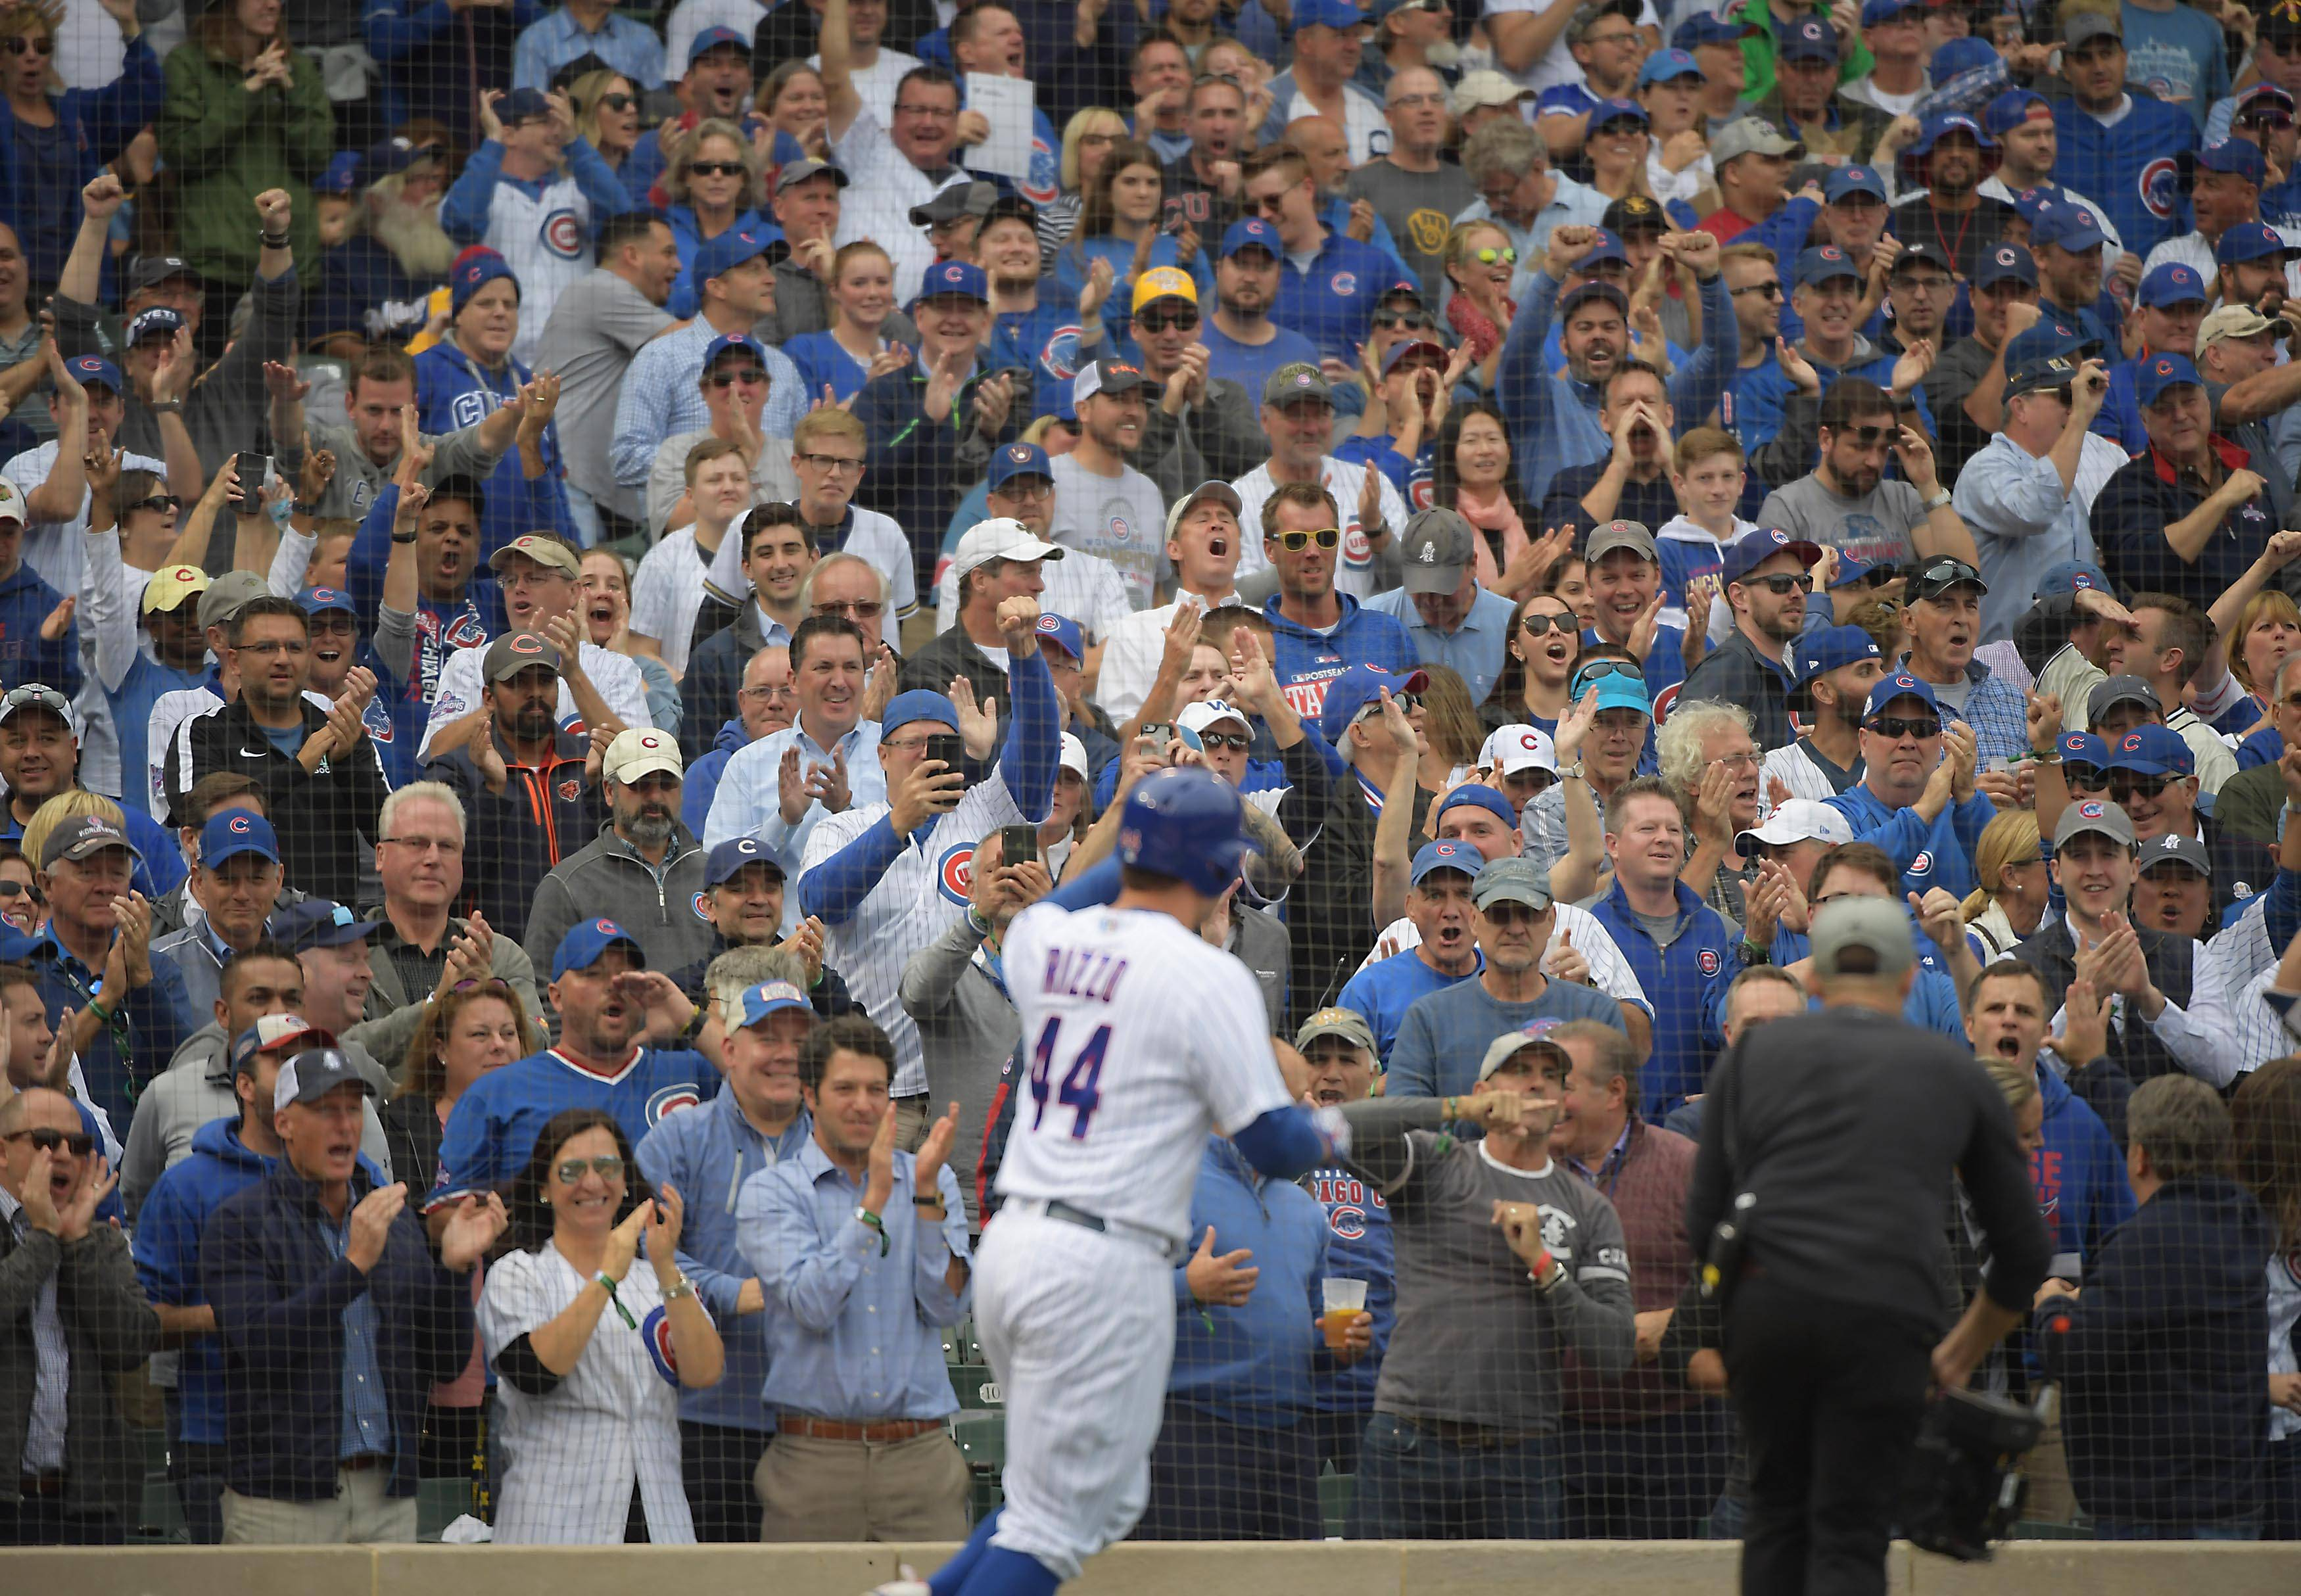 Cubs' season ticketholders will pay more, on average, for their seats next season. For some, there will be a decrease in price.